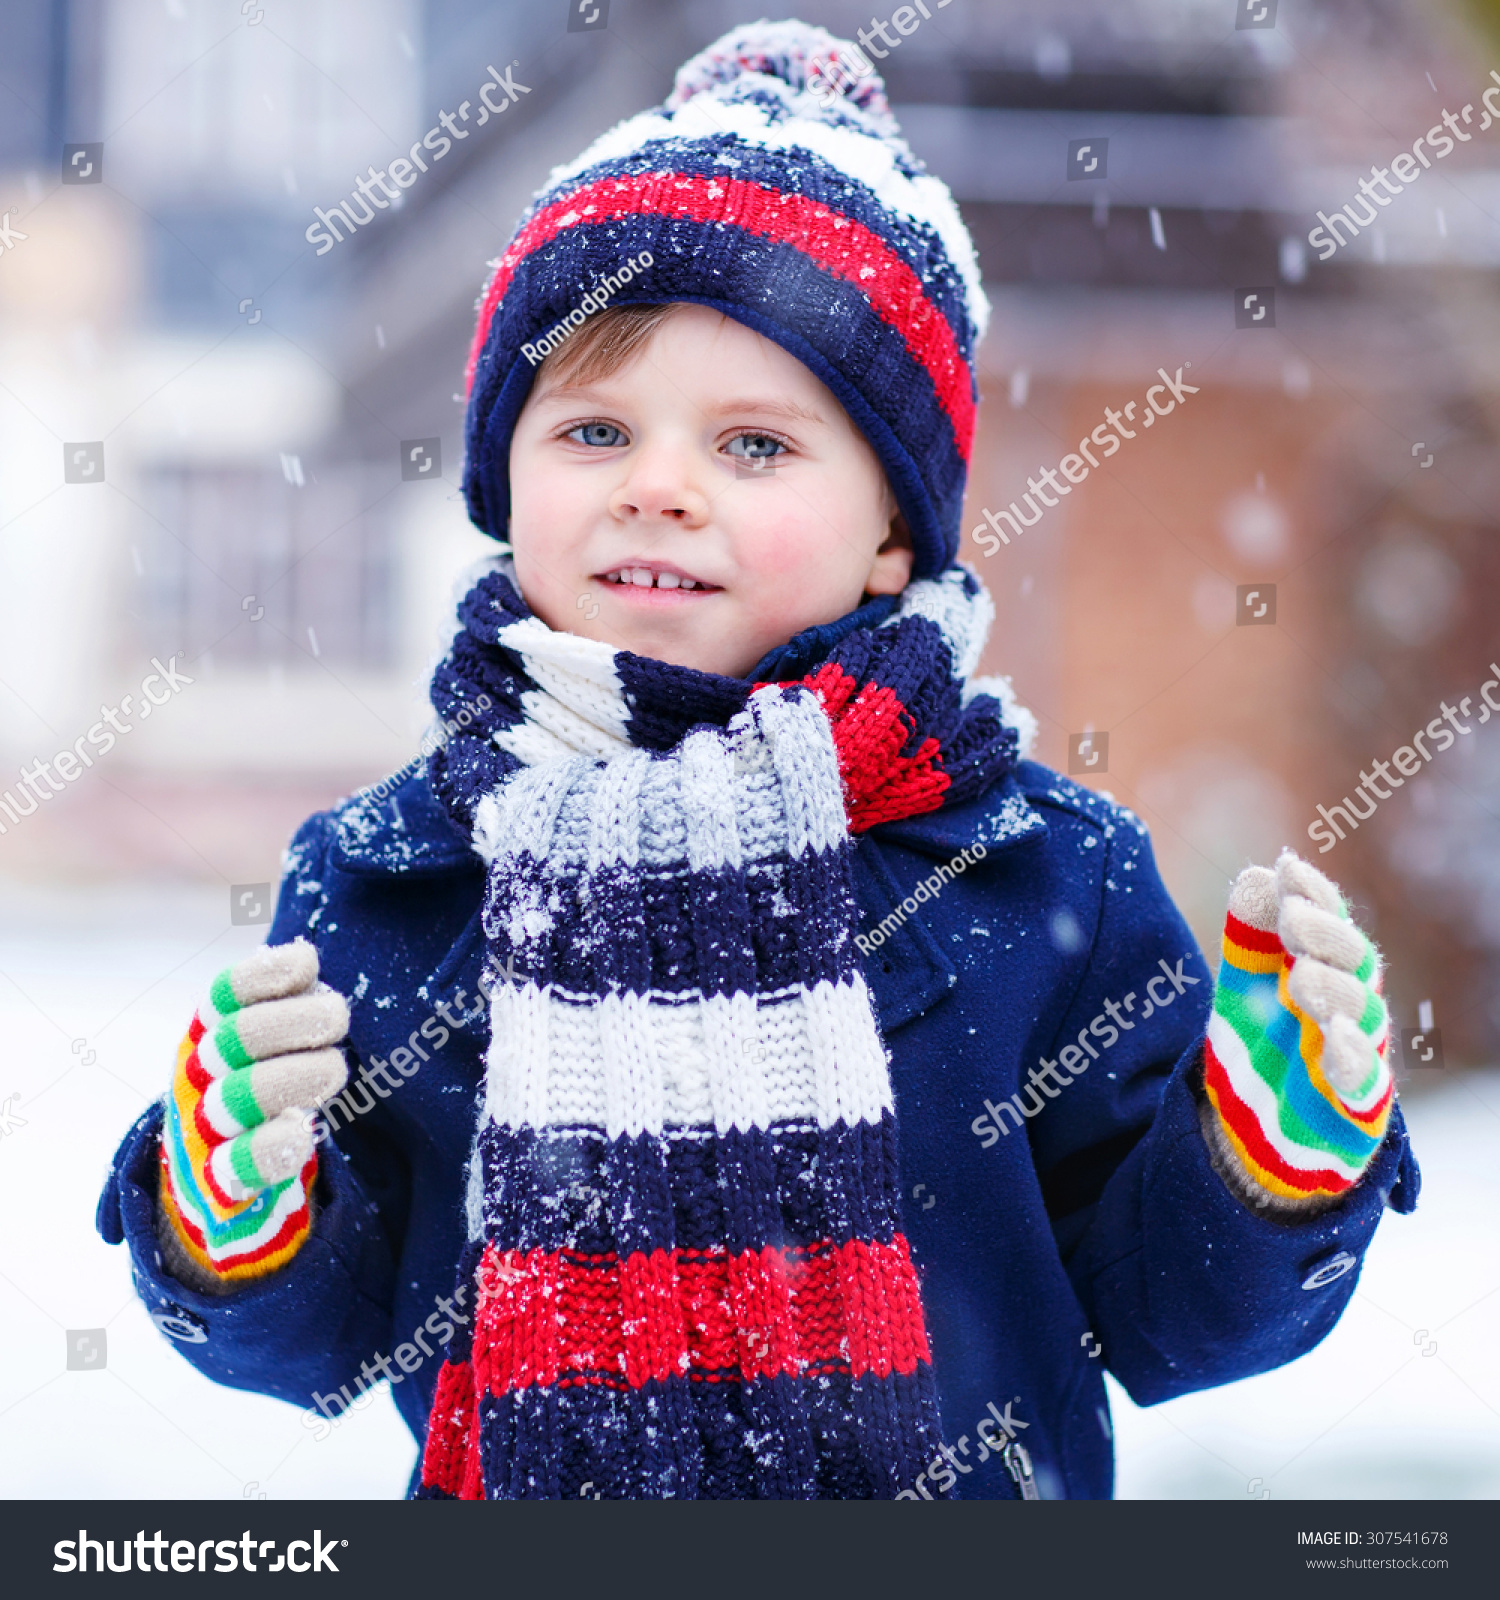 ccef1422ee7 Portrait of little funny boy in colorful winter clothes having fun with snow